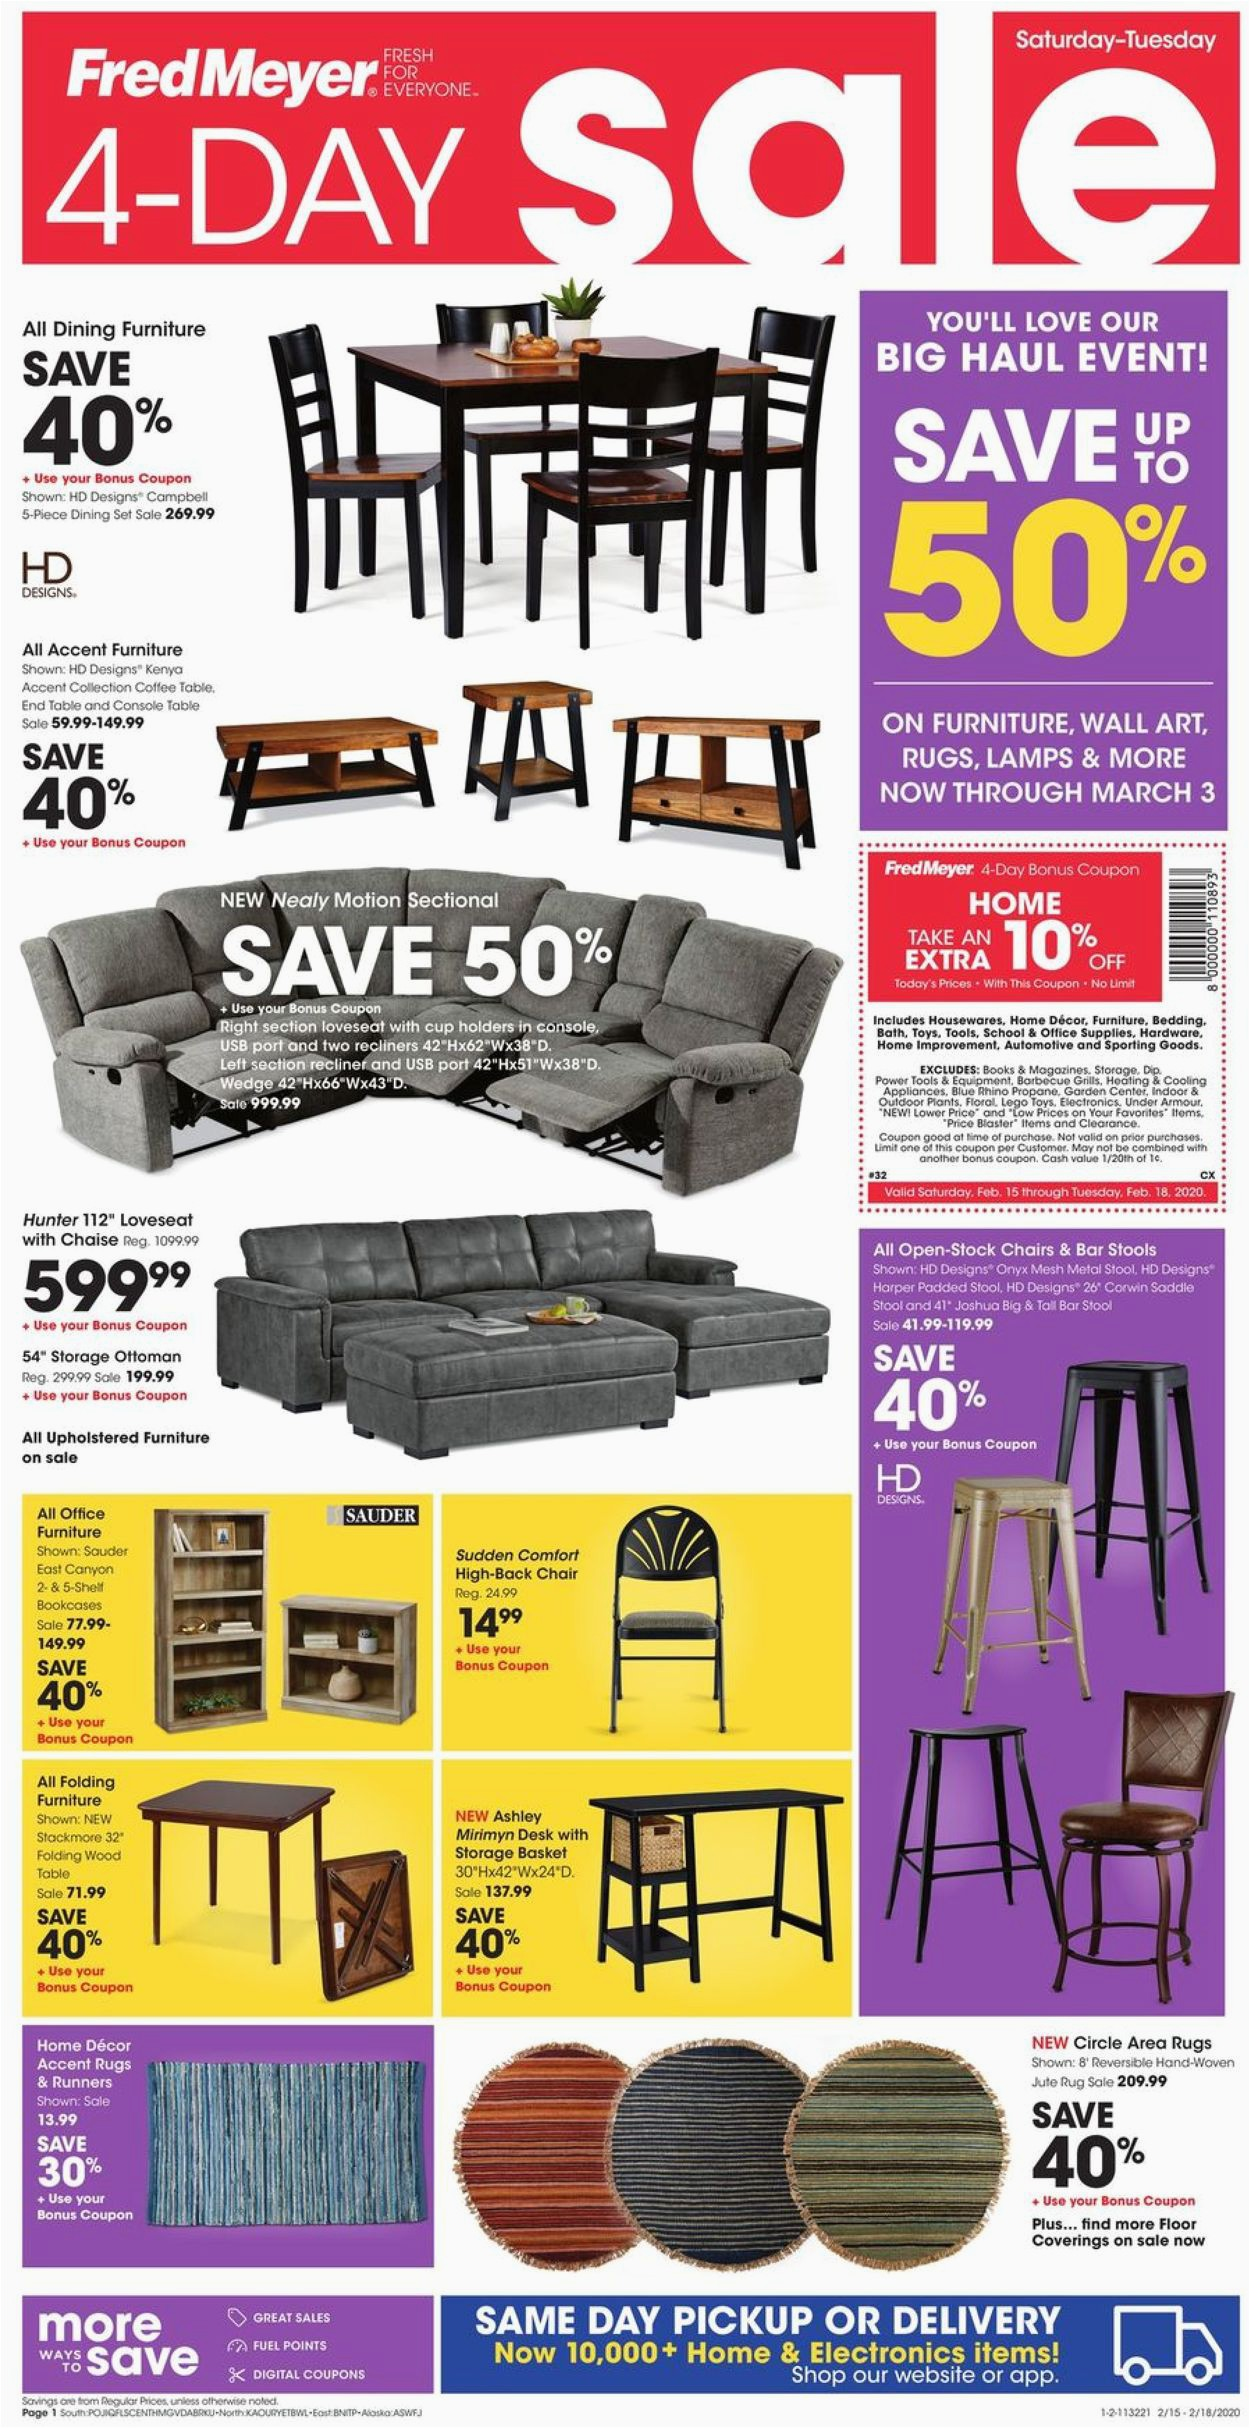 fred meyer weekly ad XSG8Rr4qPD 0